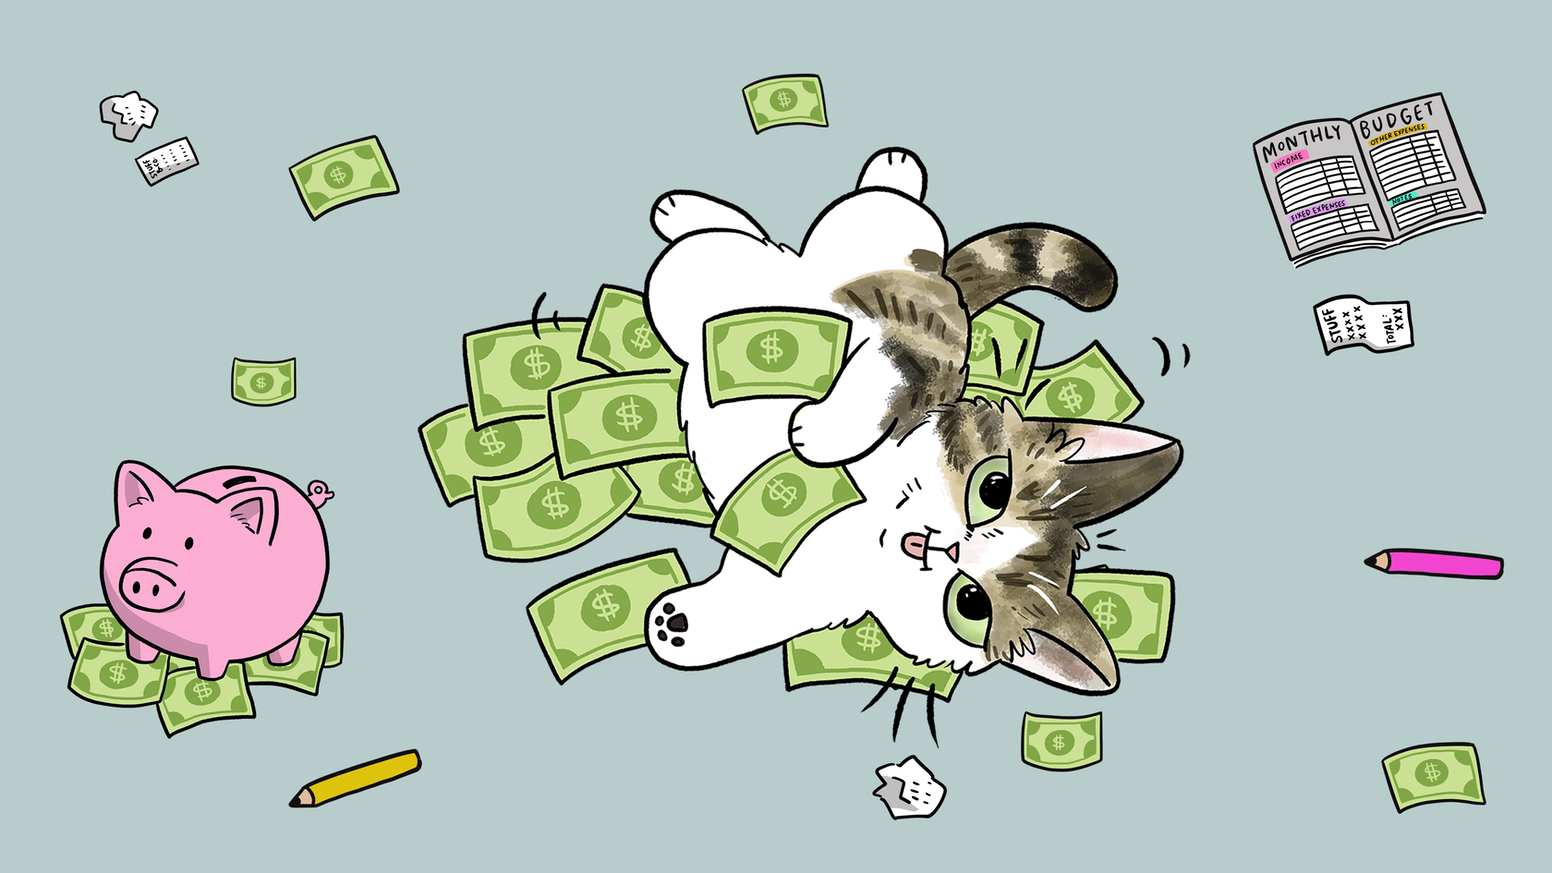 2nd edition of the approachable, illustrated guide to money with cats explaining everything from budgeting to investing.